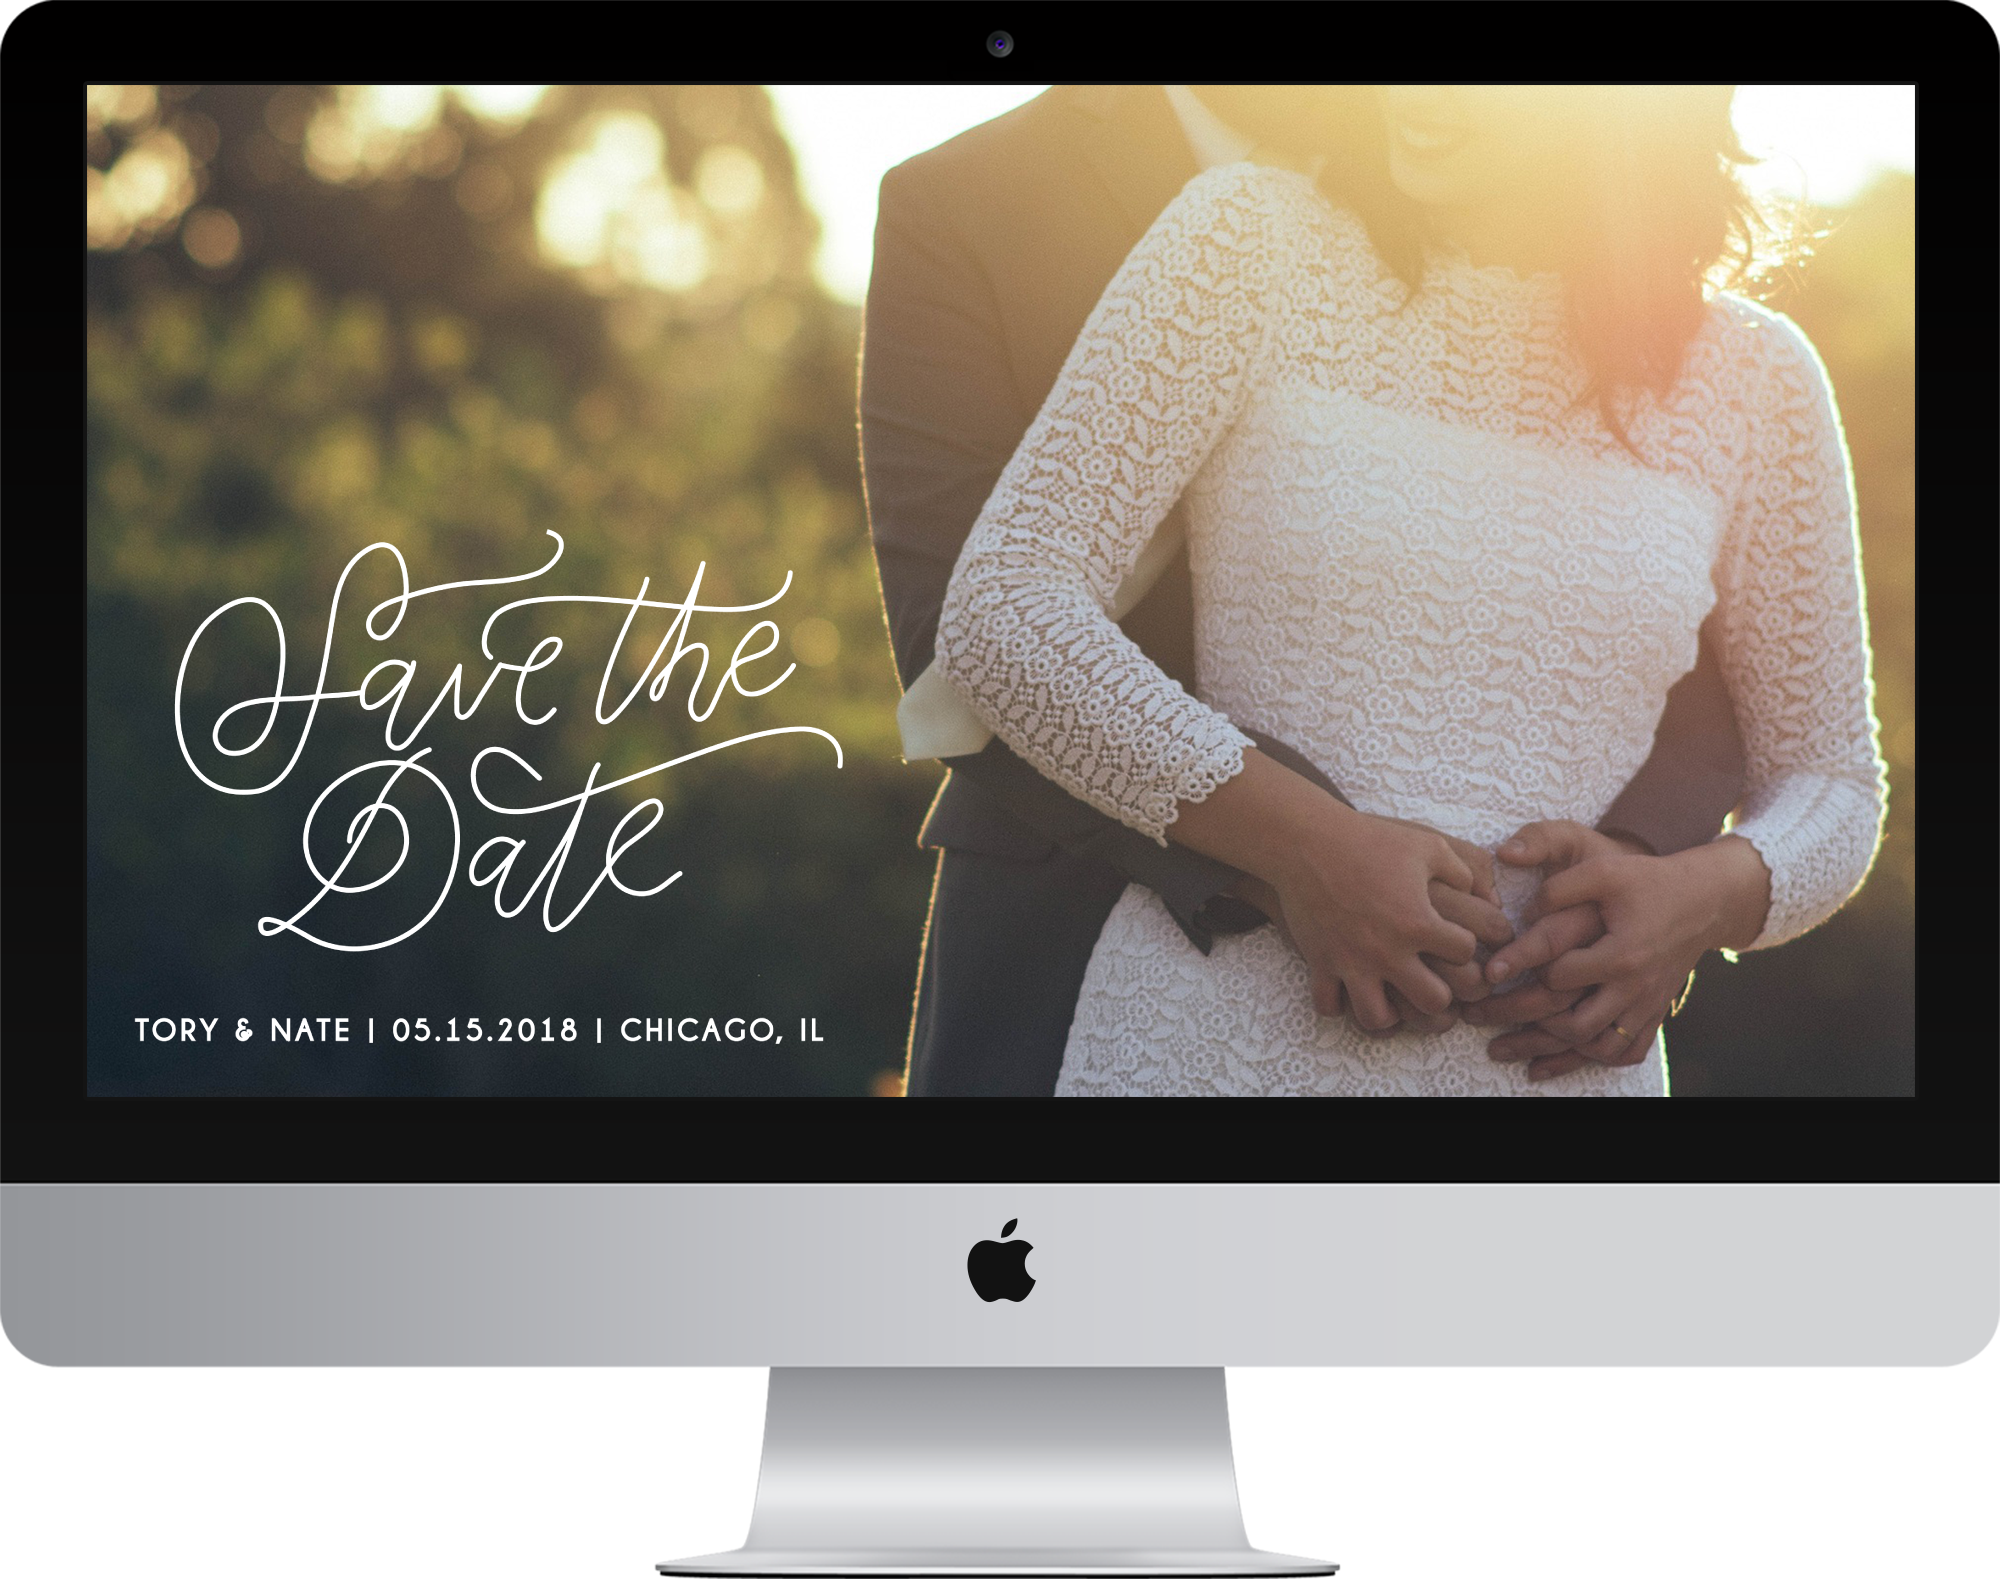 tory-nate-online-save-the-date